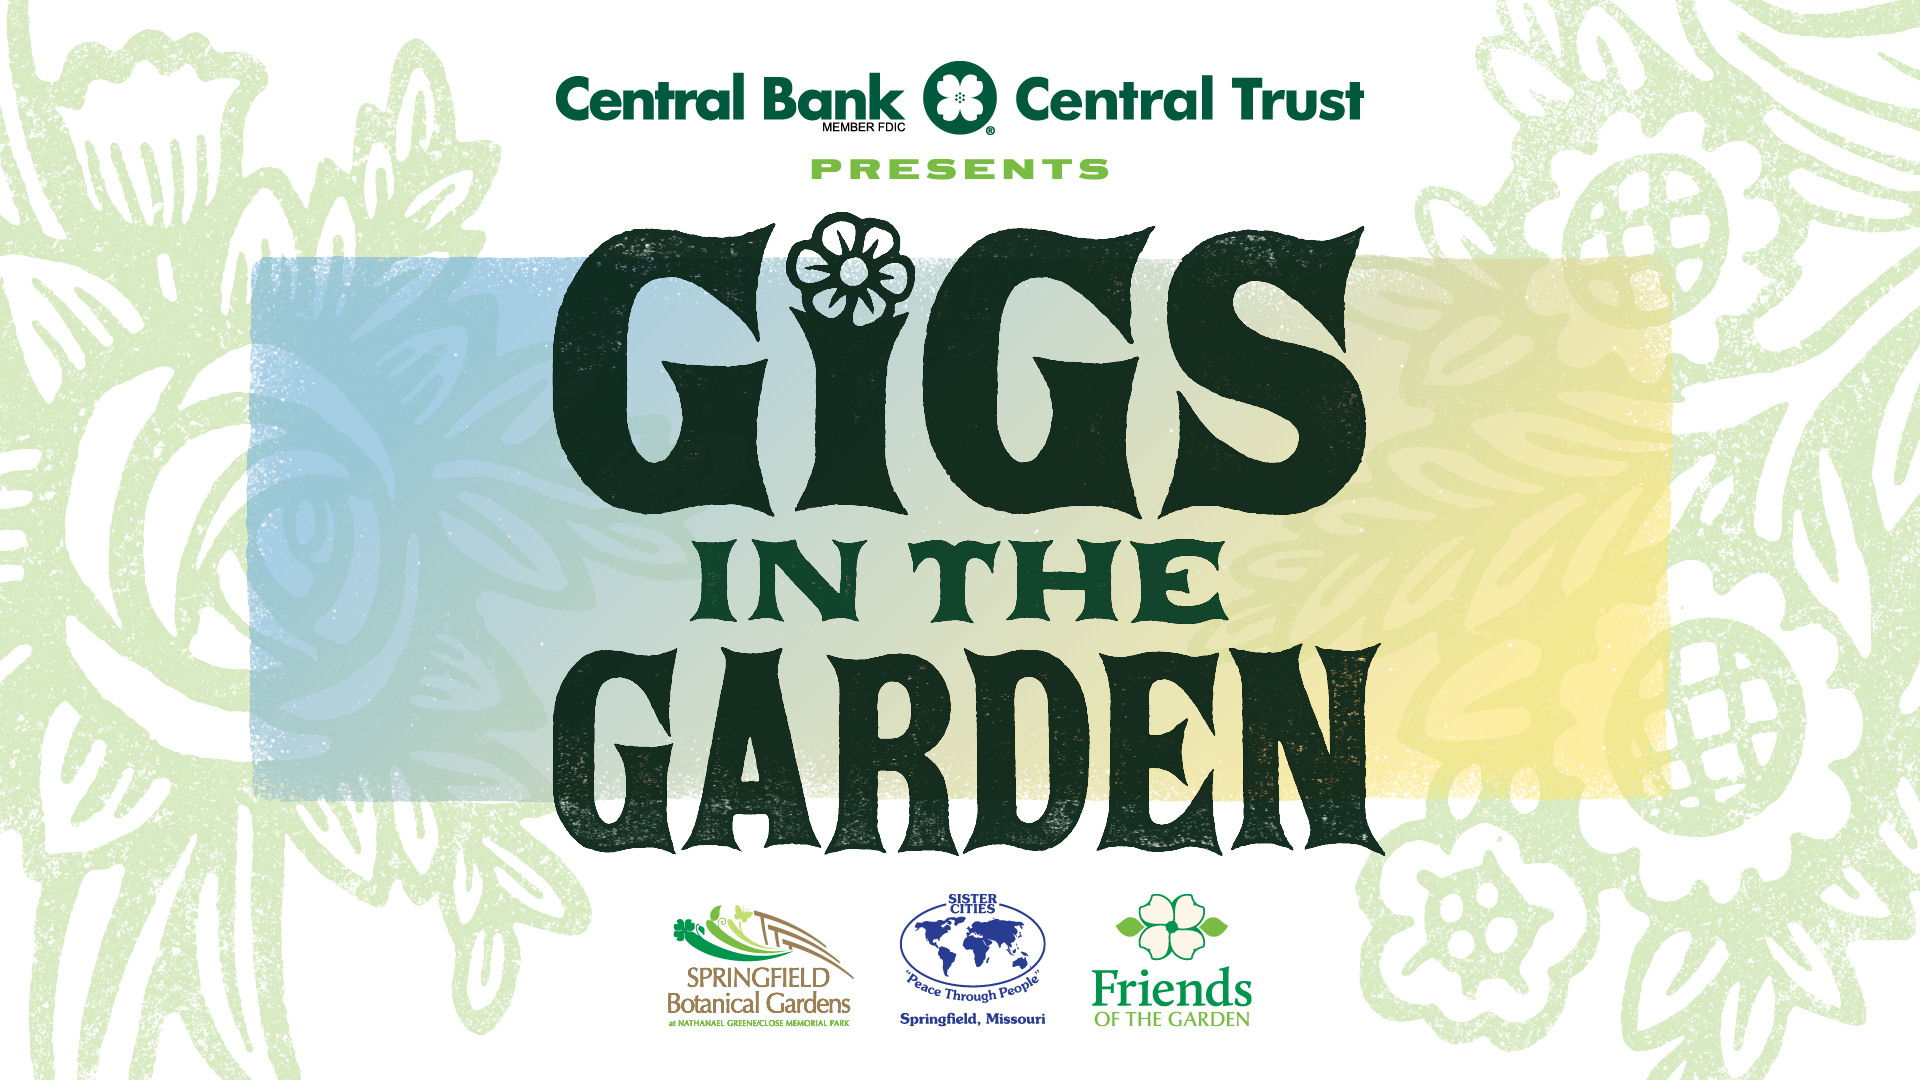 Free Gigs in the Garden concert series brings music to the Springfield Botanical Gardens